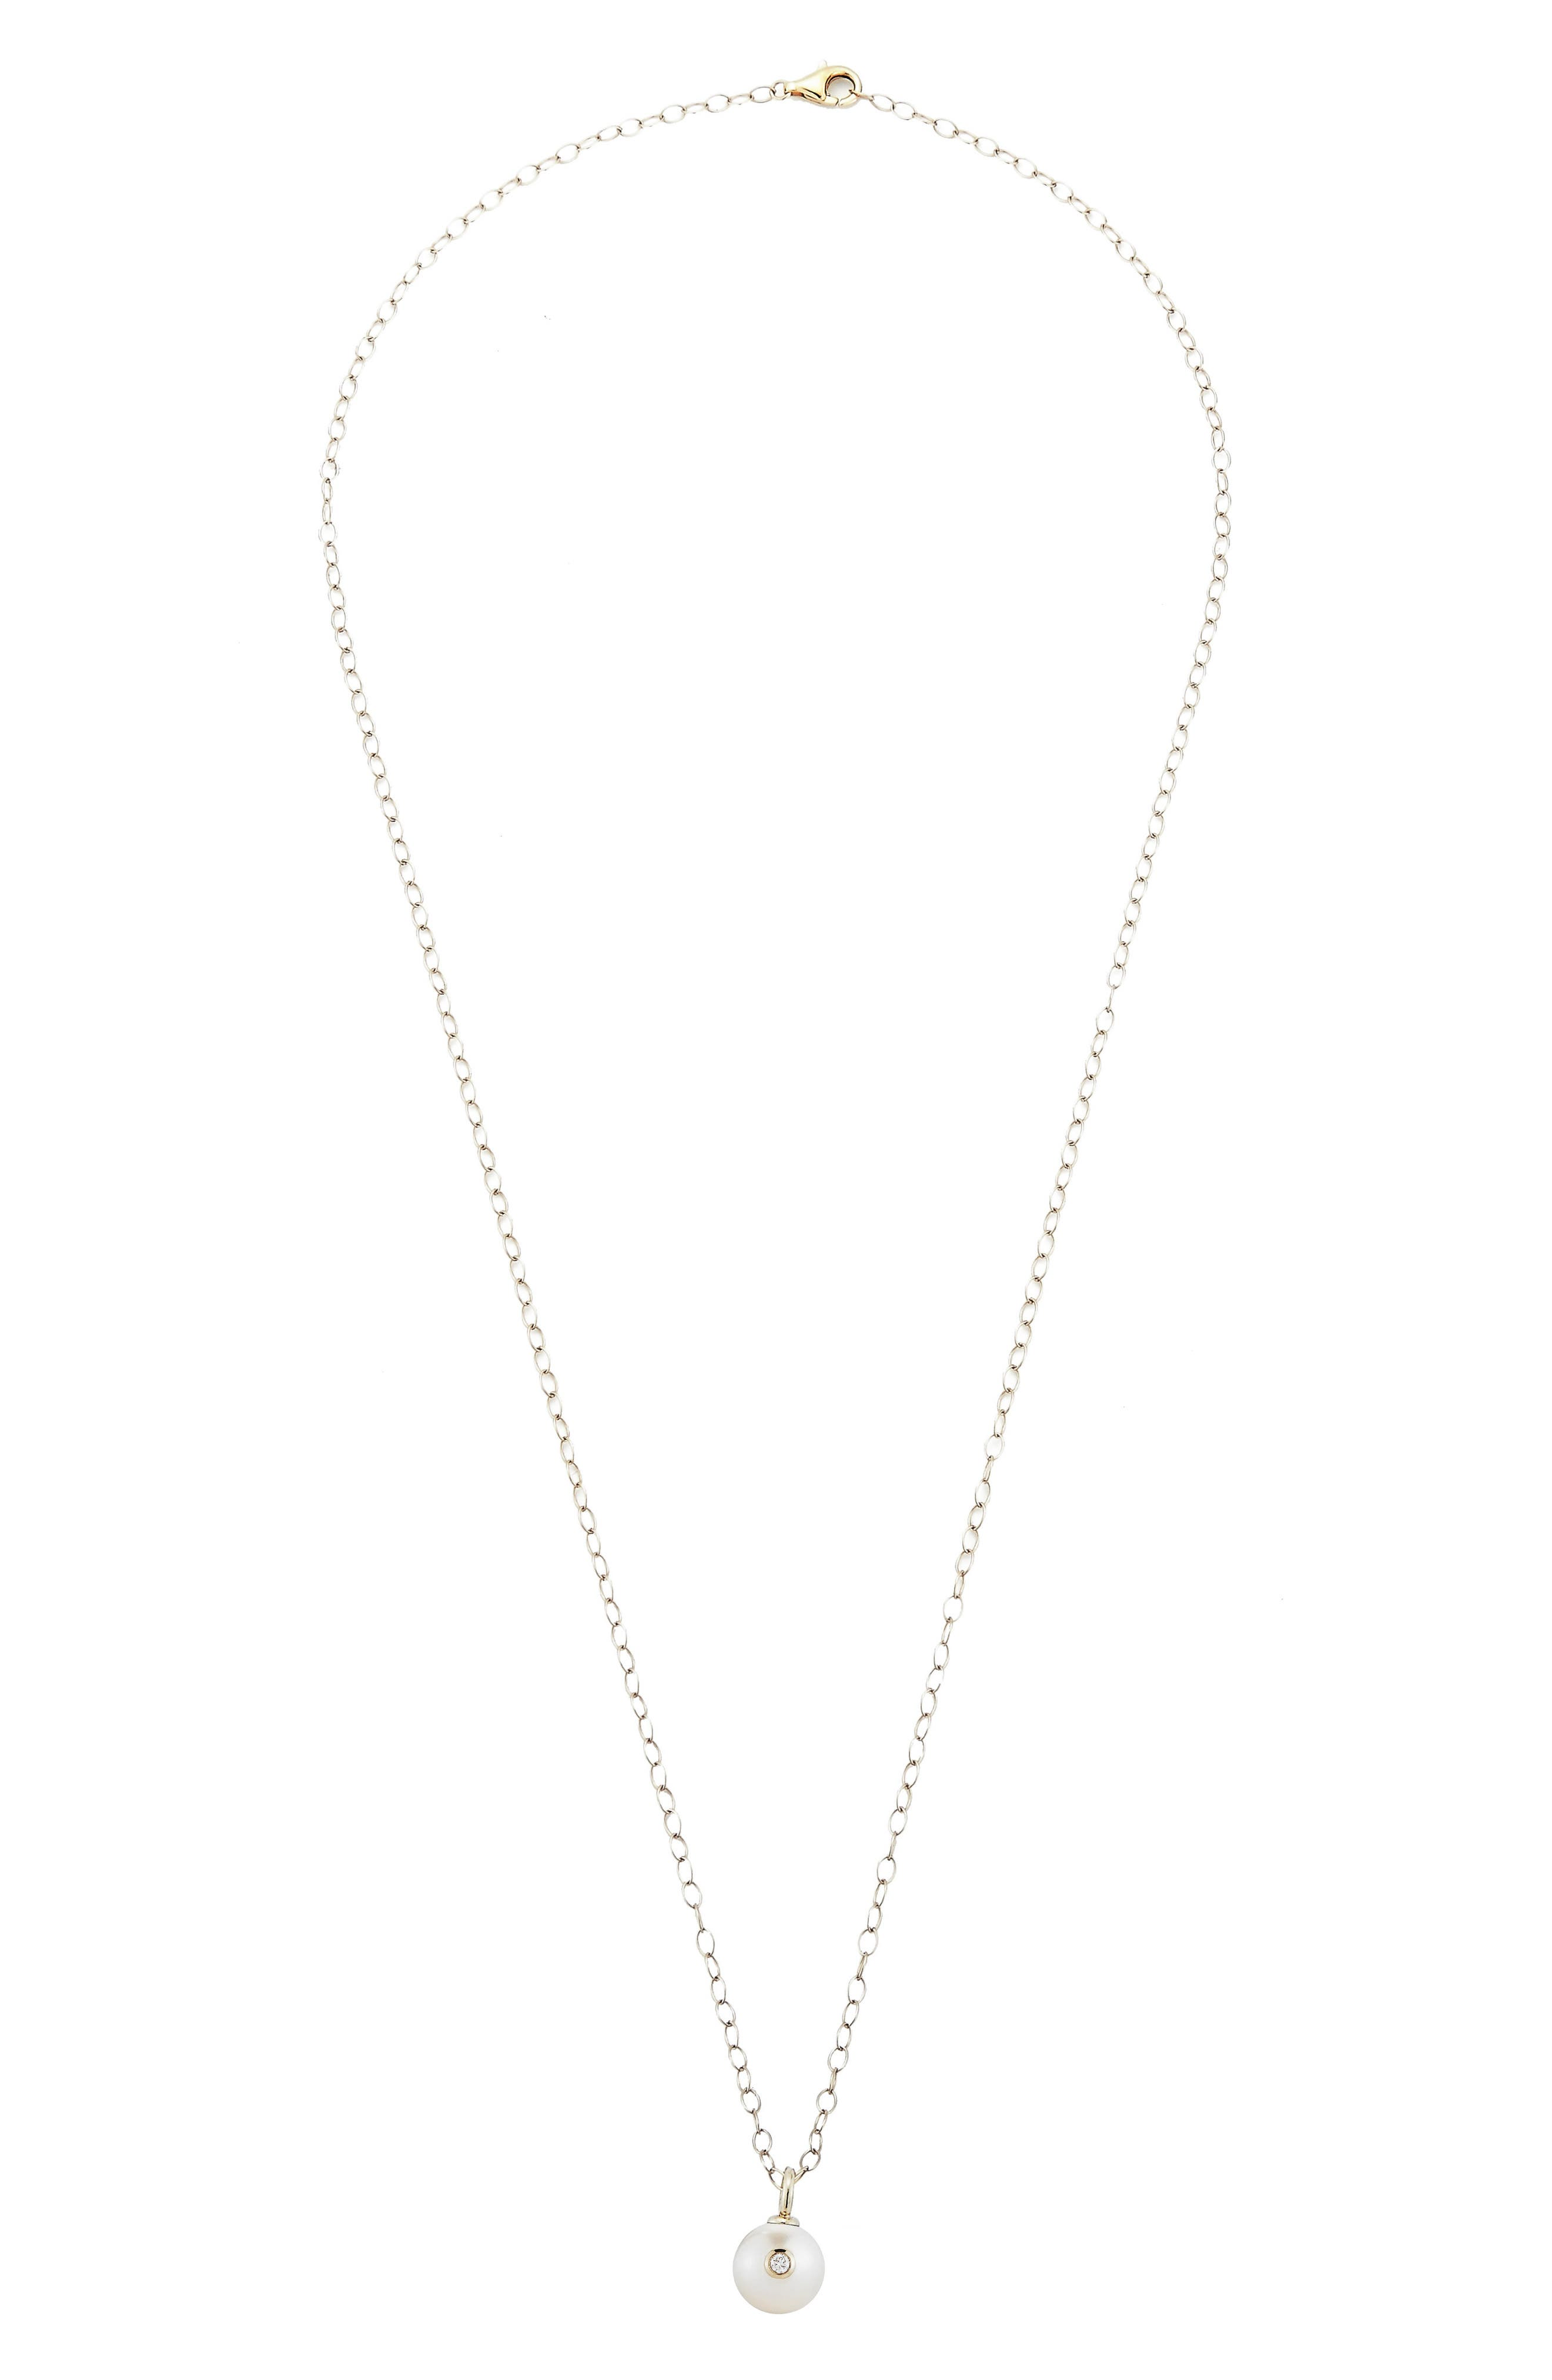 Round Genuine Pearl & Diamond Pendant Necklace,                             Main thumbnail 1, color,                             YELLOW GOLD/ PEARL